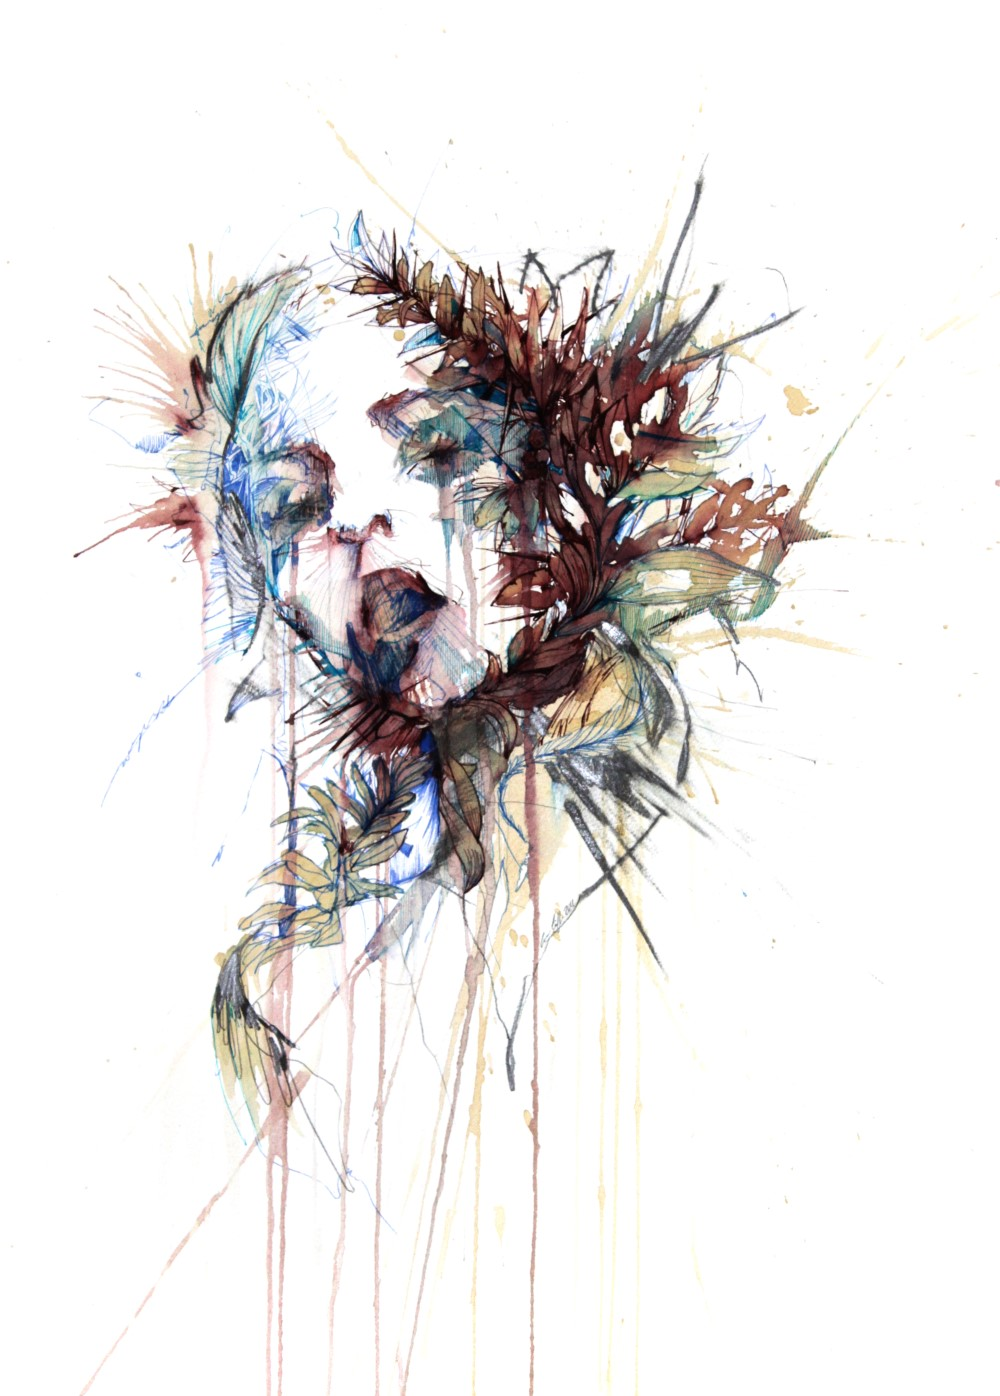 Choke by Carne Griffiths